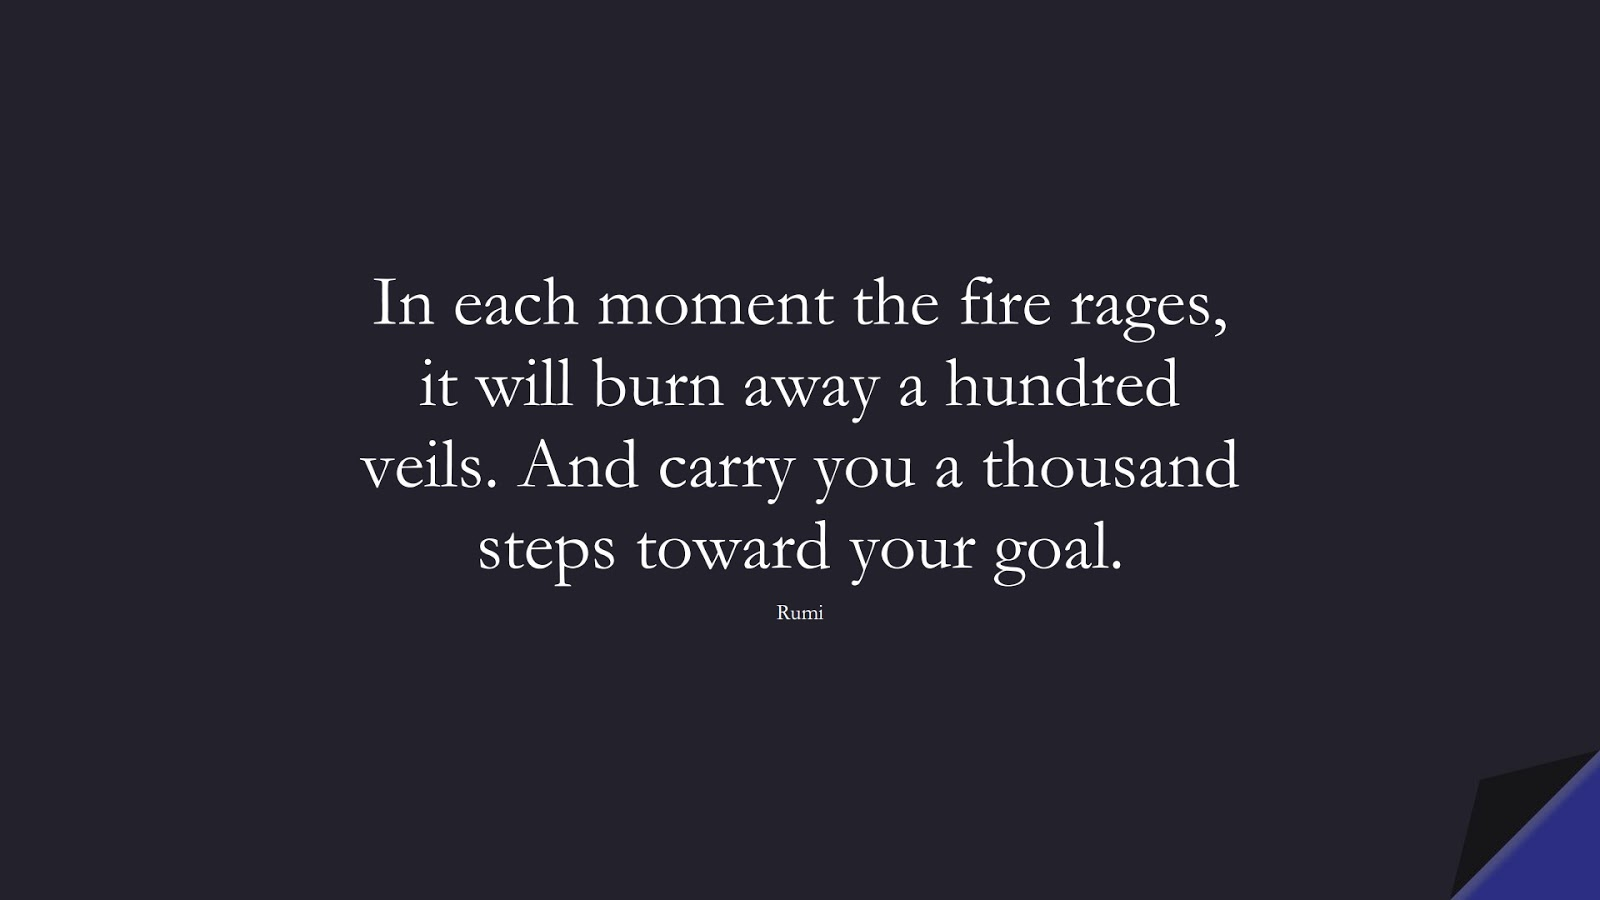 In each moment the fire rages, it will burn away a hundred veils. And carry you a thousand steps toward your goal. (Rumi);  #RumiQuotes